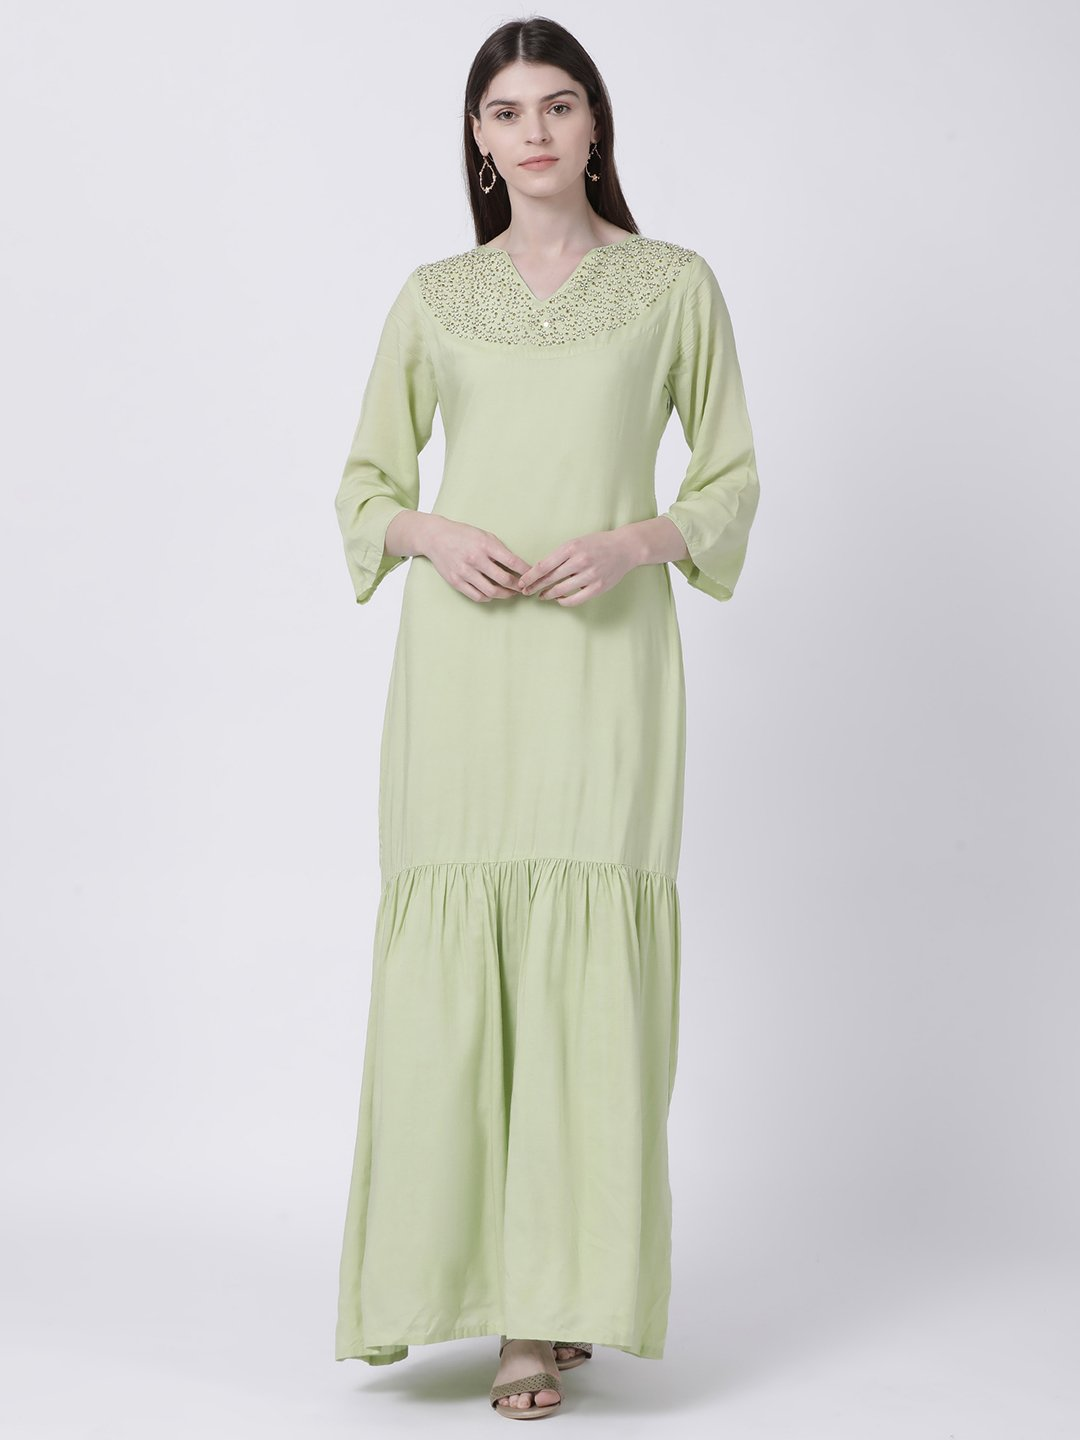 GREEN EMBELLISHED NECK MAXI DRESS - Rossbelle